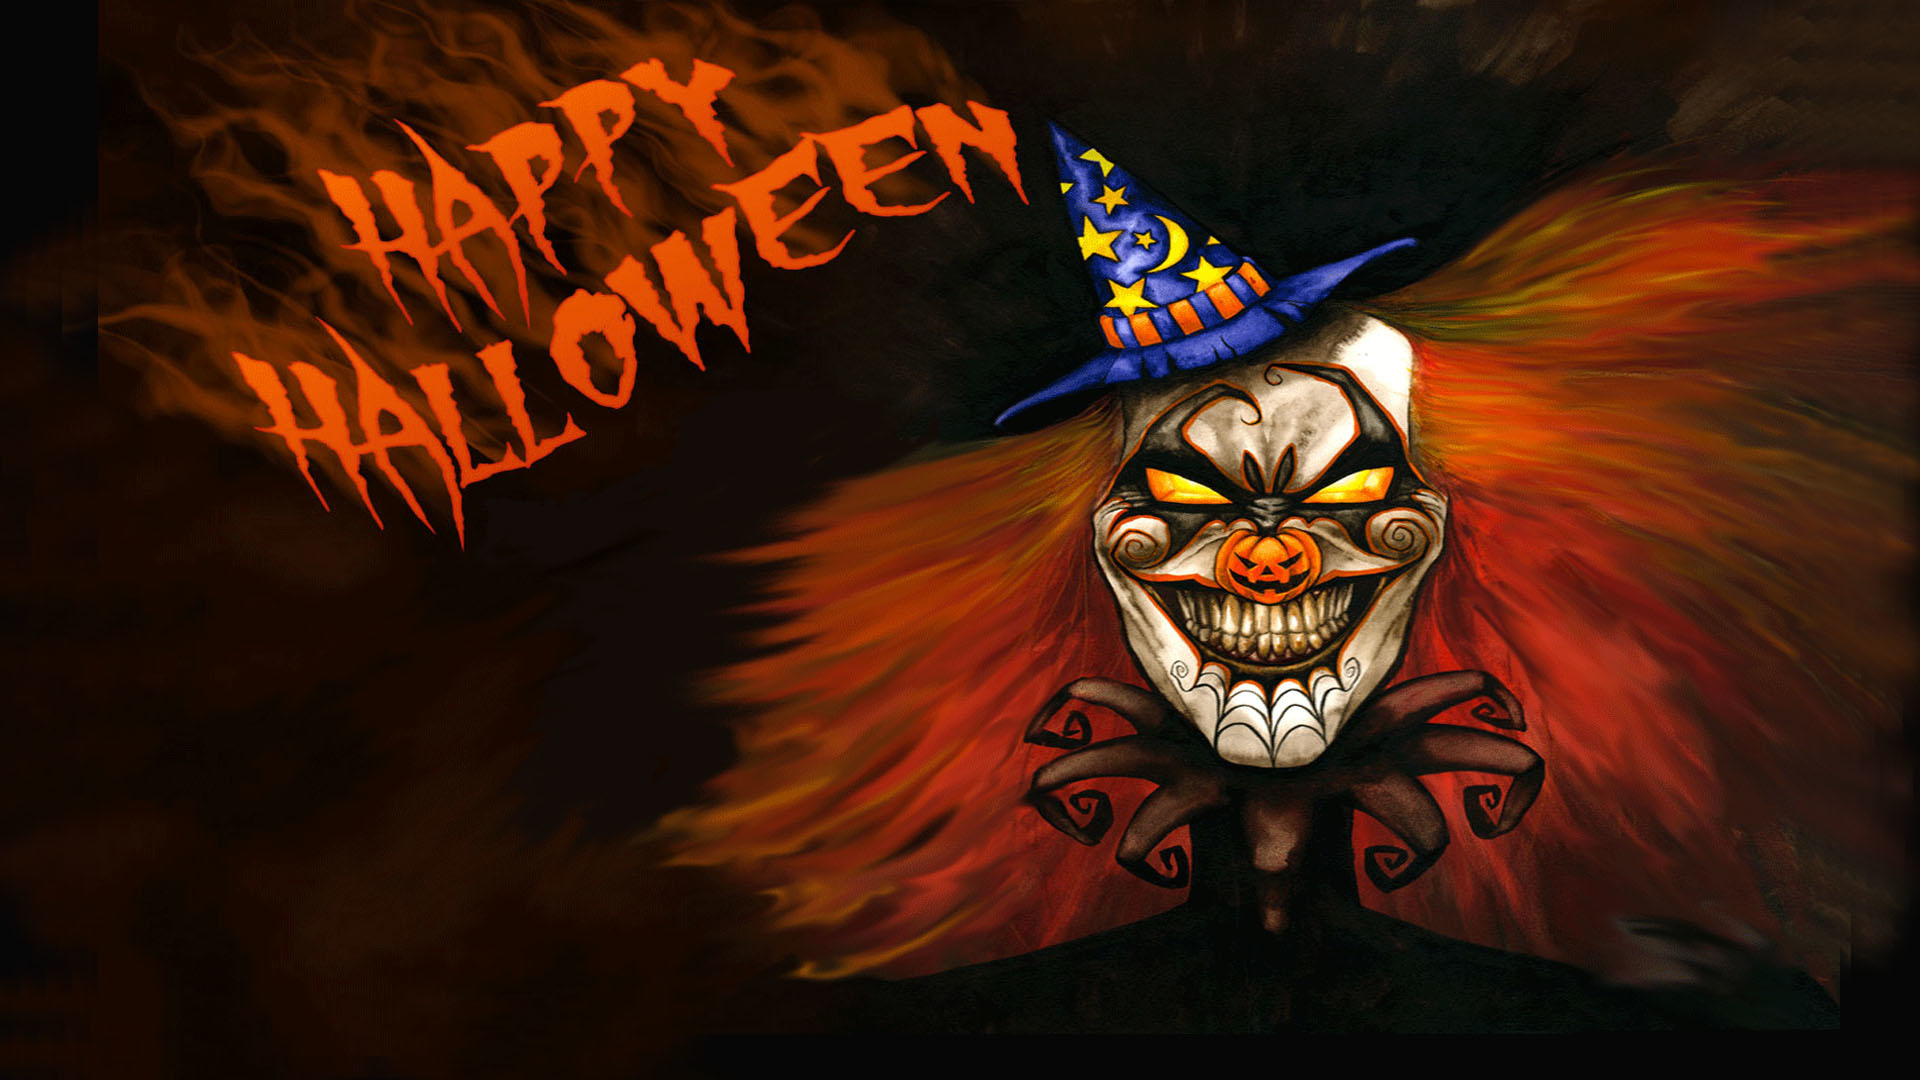 Scary Halloween Images HD 1080 P